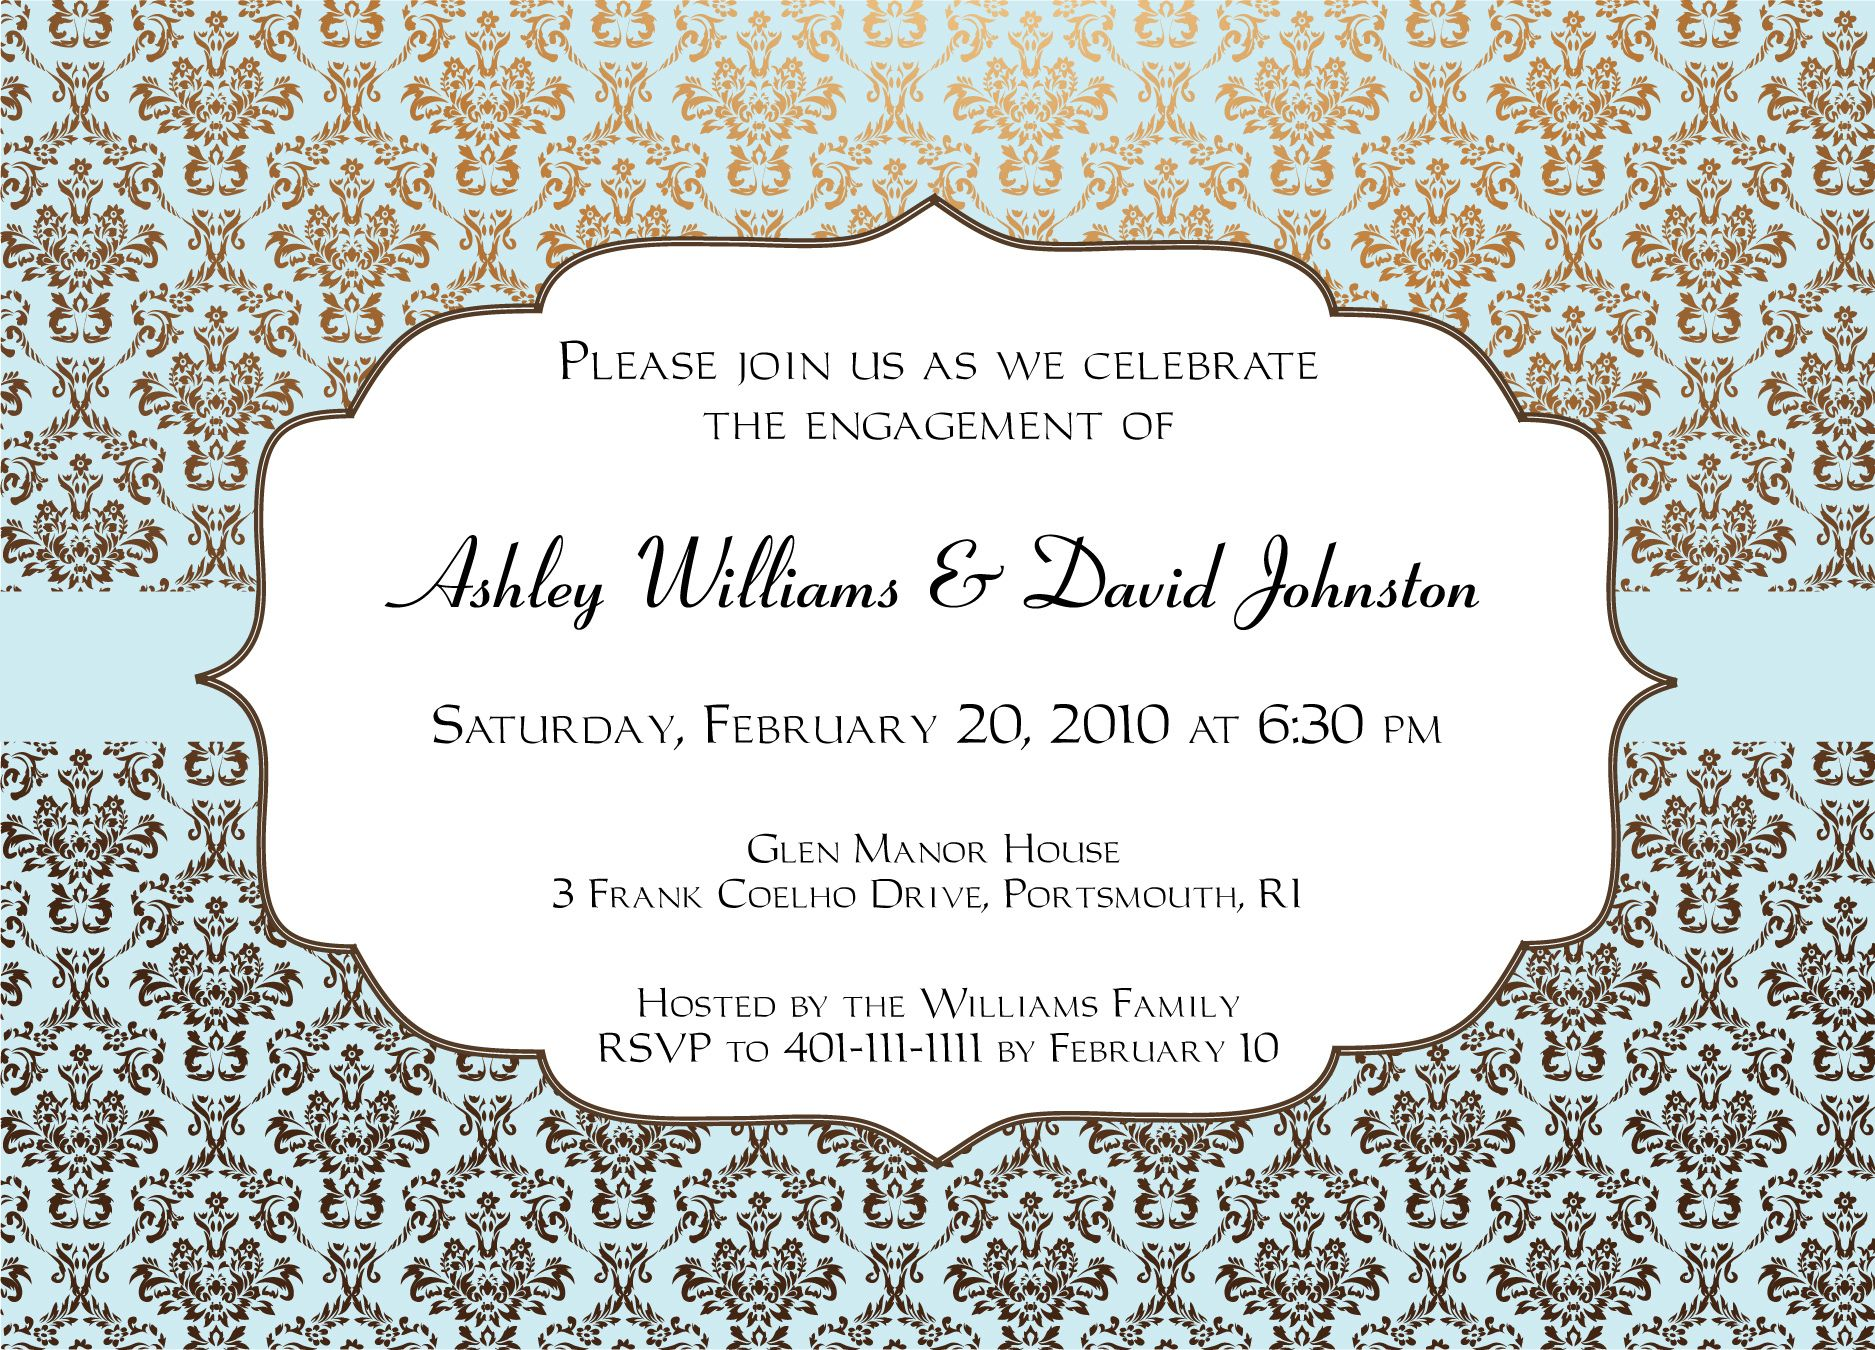 Engagement Party Invitations Templates – Invitation Designs